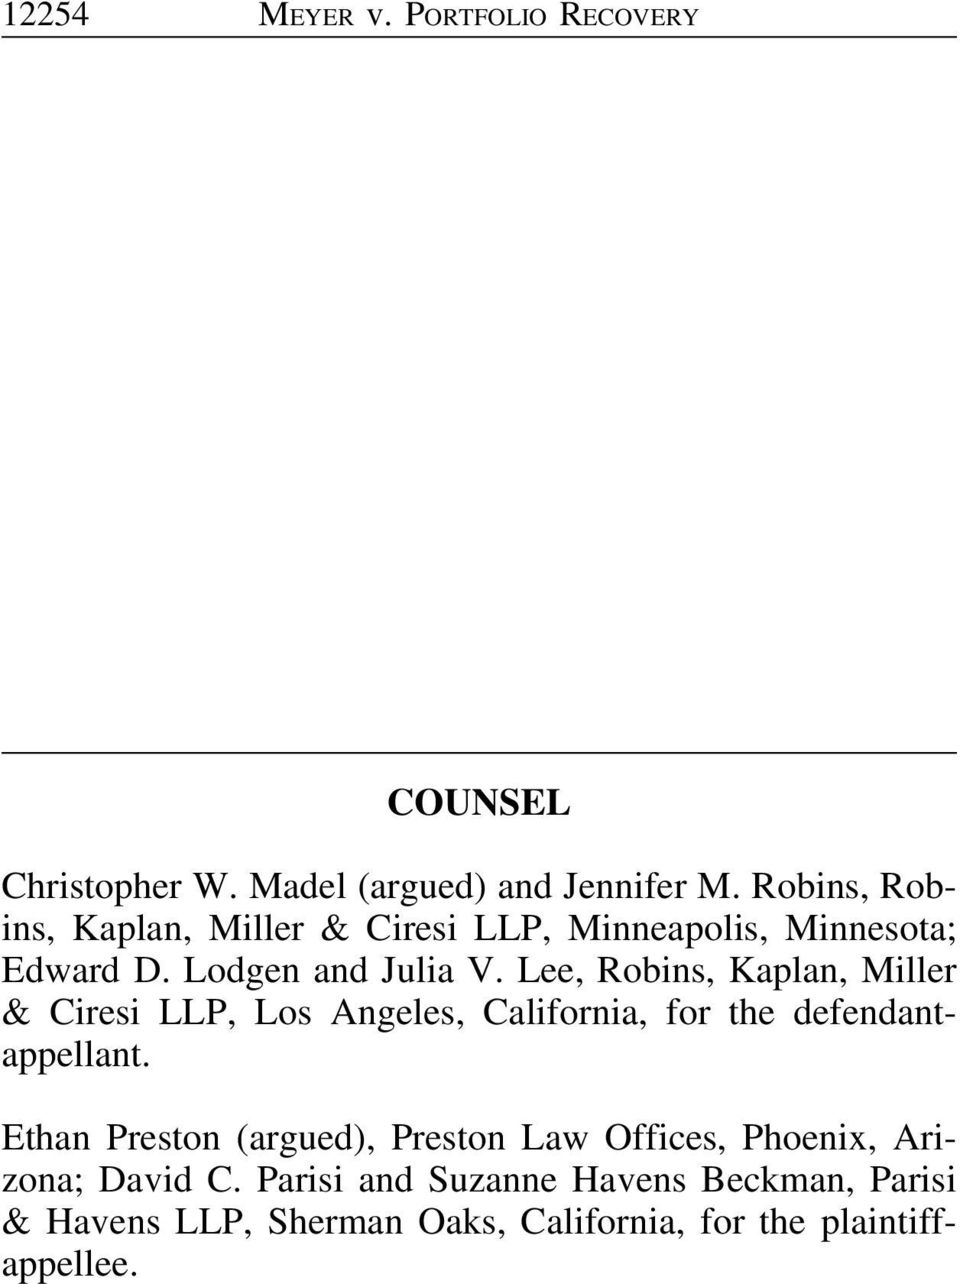 Lee, Robins, Kaplan, Miller & Ciresi LLP, Los Angeles, California, for the defendantappellant.